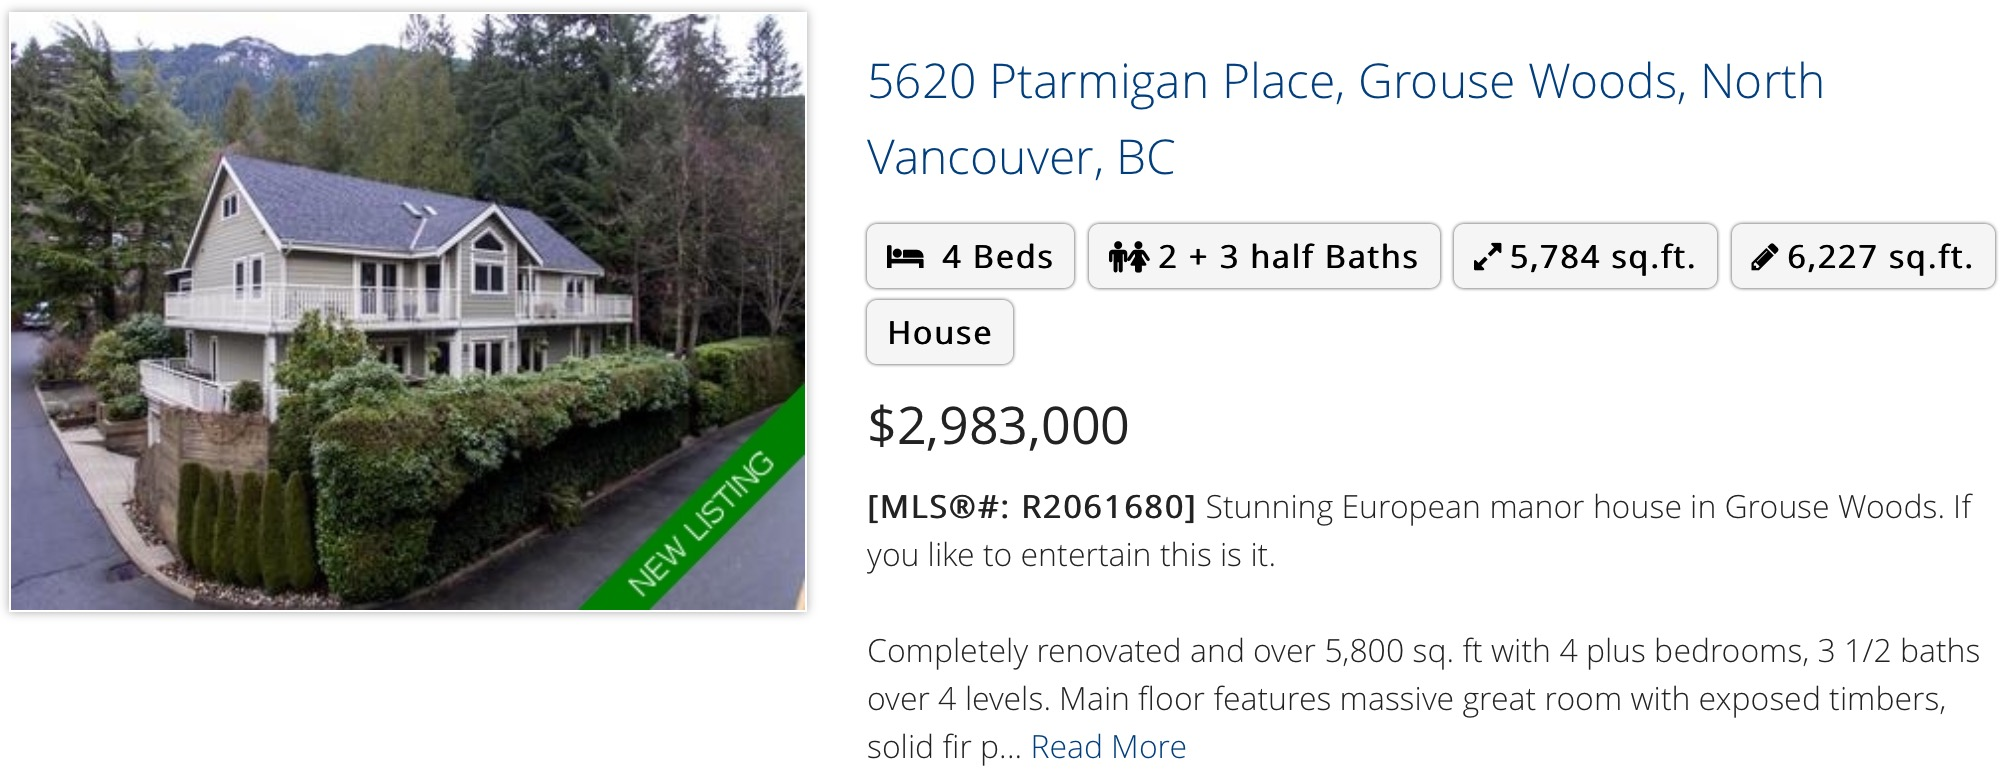 5620 Ptarmigan Place, Grouse Woods, North Vancouver, BC